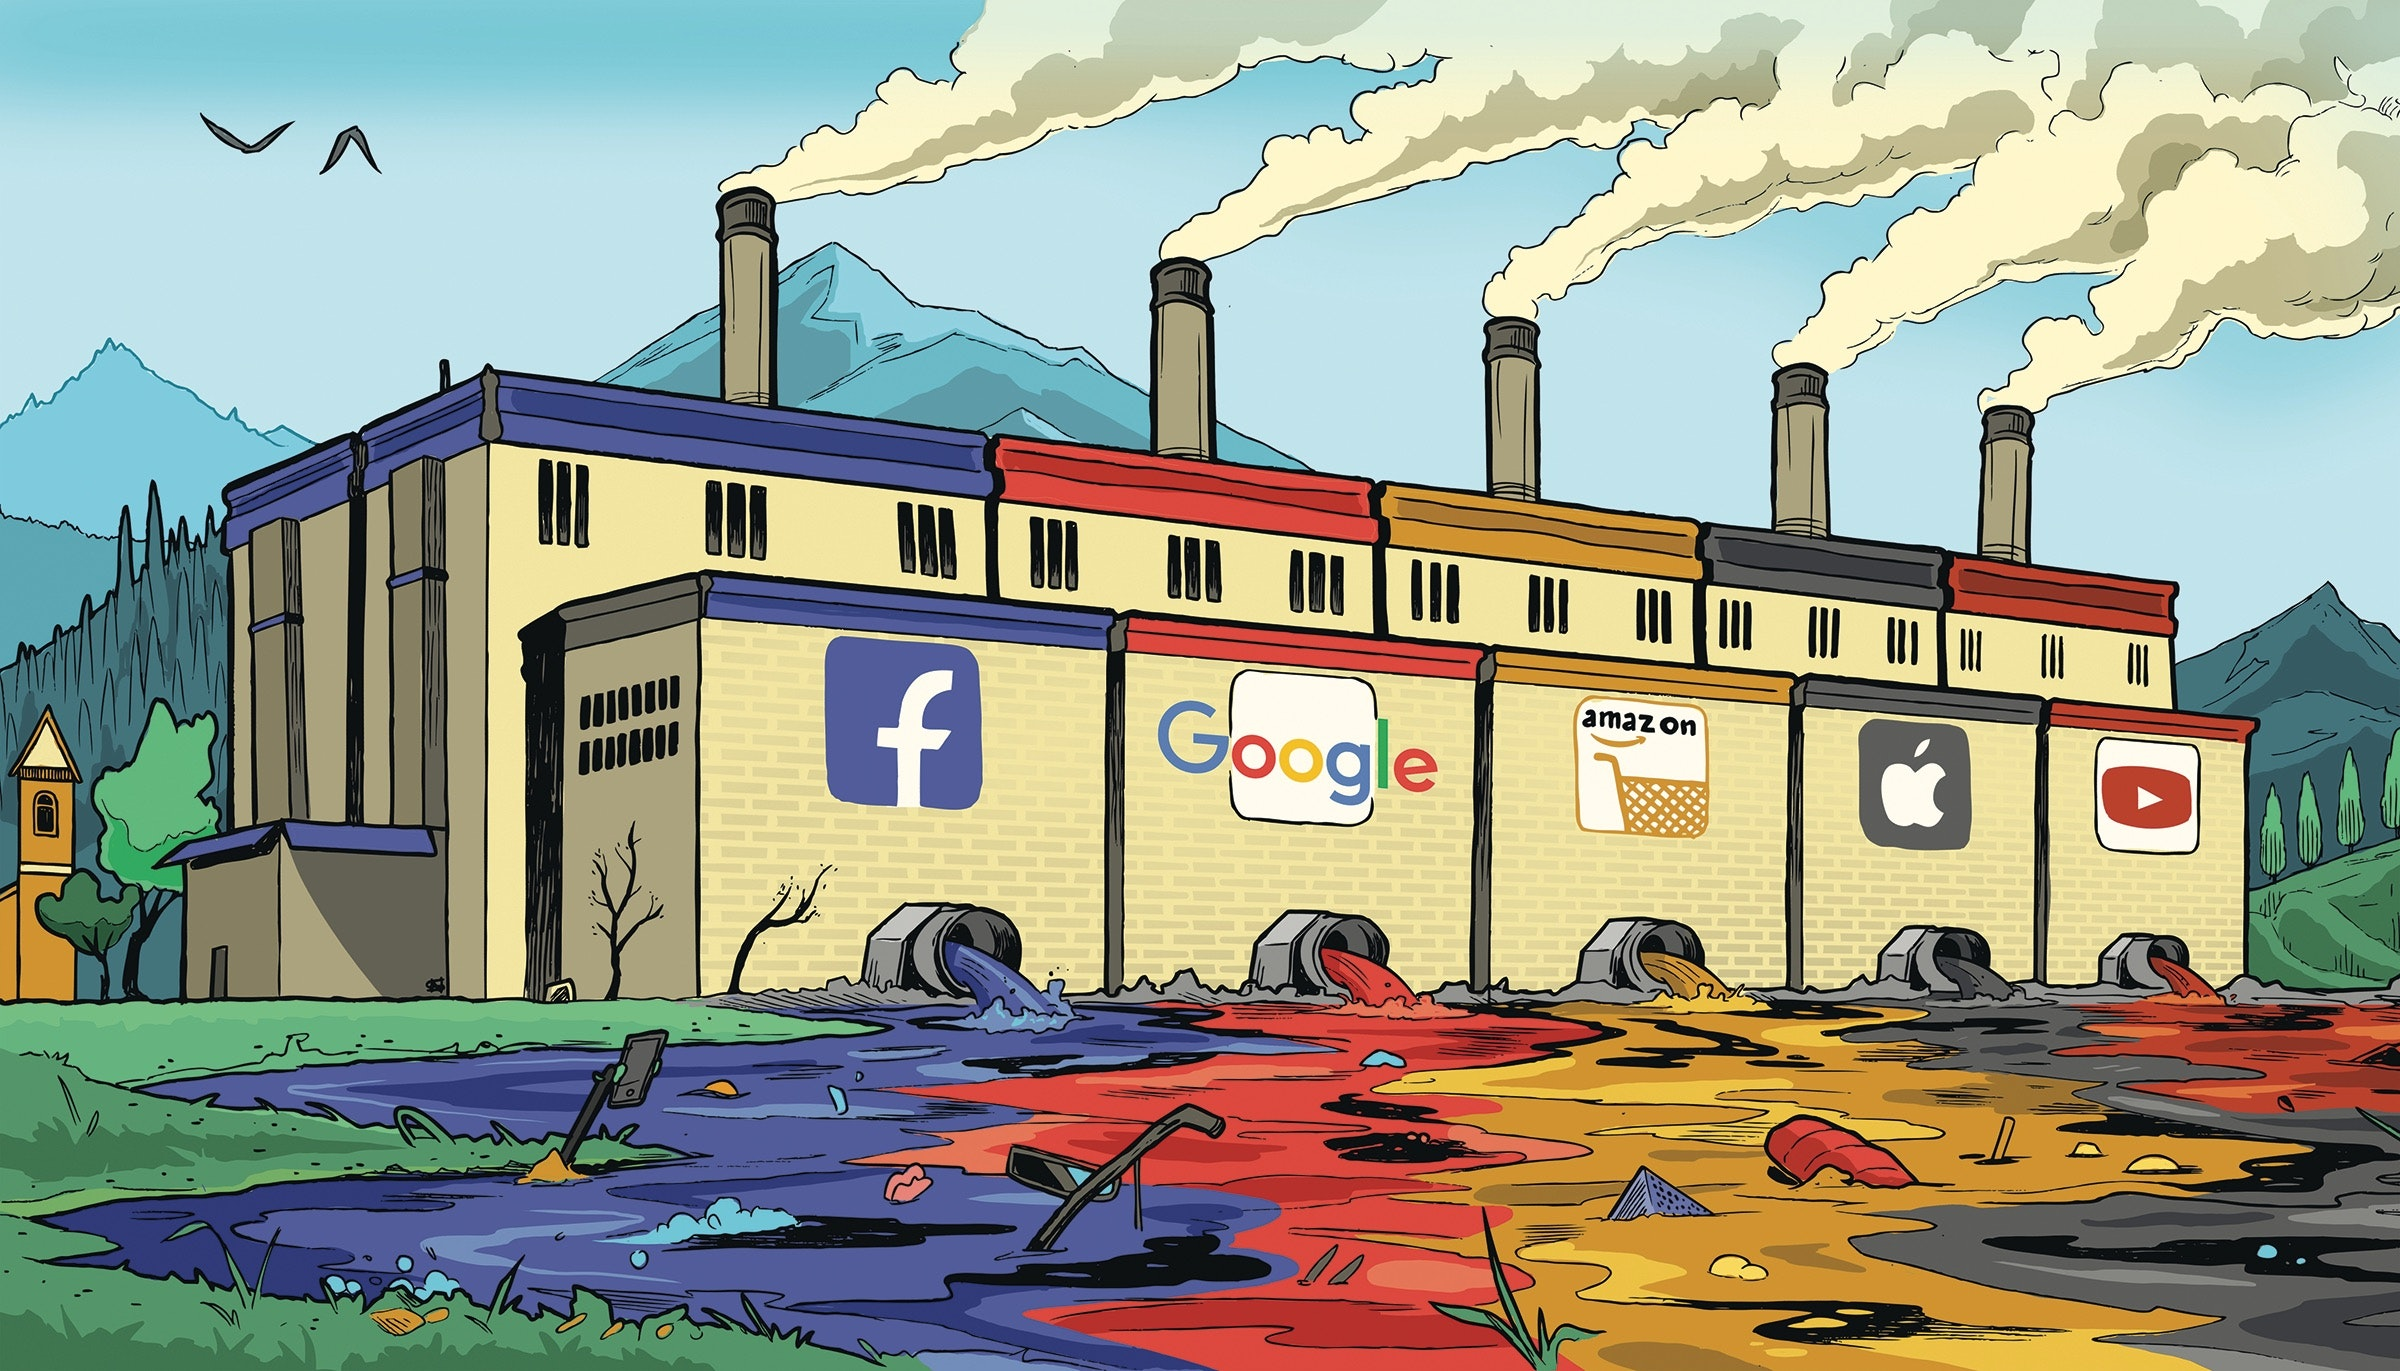 "<p>Read ""<a href=""https://washingtonmonthly.com/magazine/january-february-march-2019/the-world-is-choking-on-digital-pollution/"" rel=""noopener noreferrer"" target=""_blank"">The World Is Choking on Digital Pollution</a>"" in Washington Monthly.</p>"